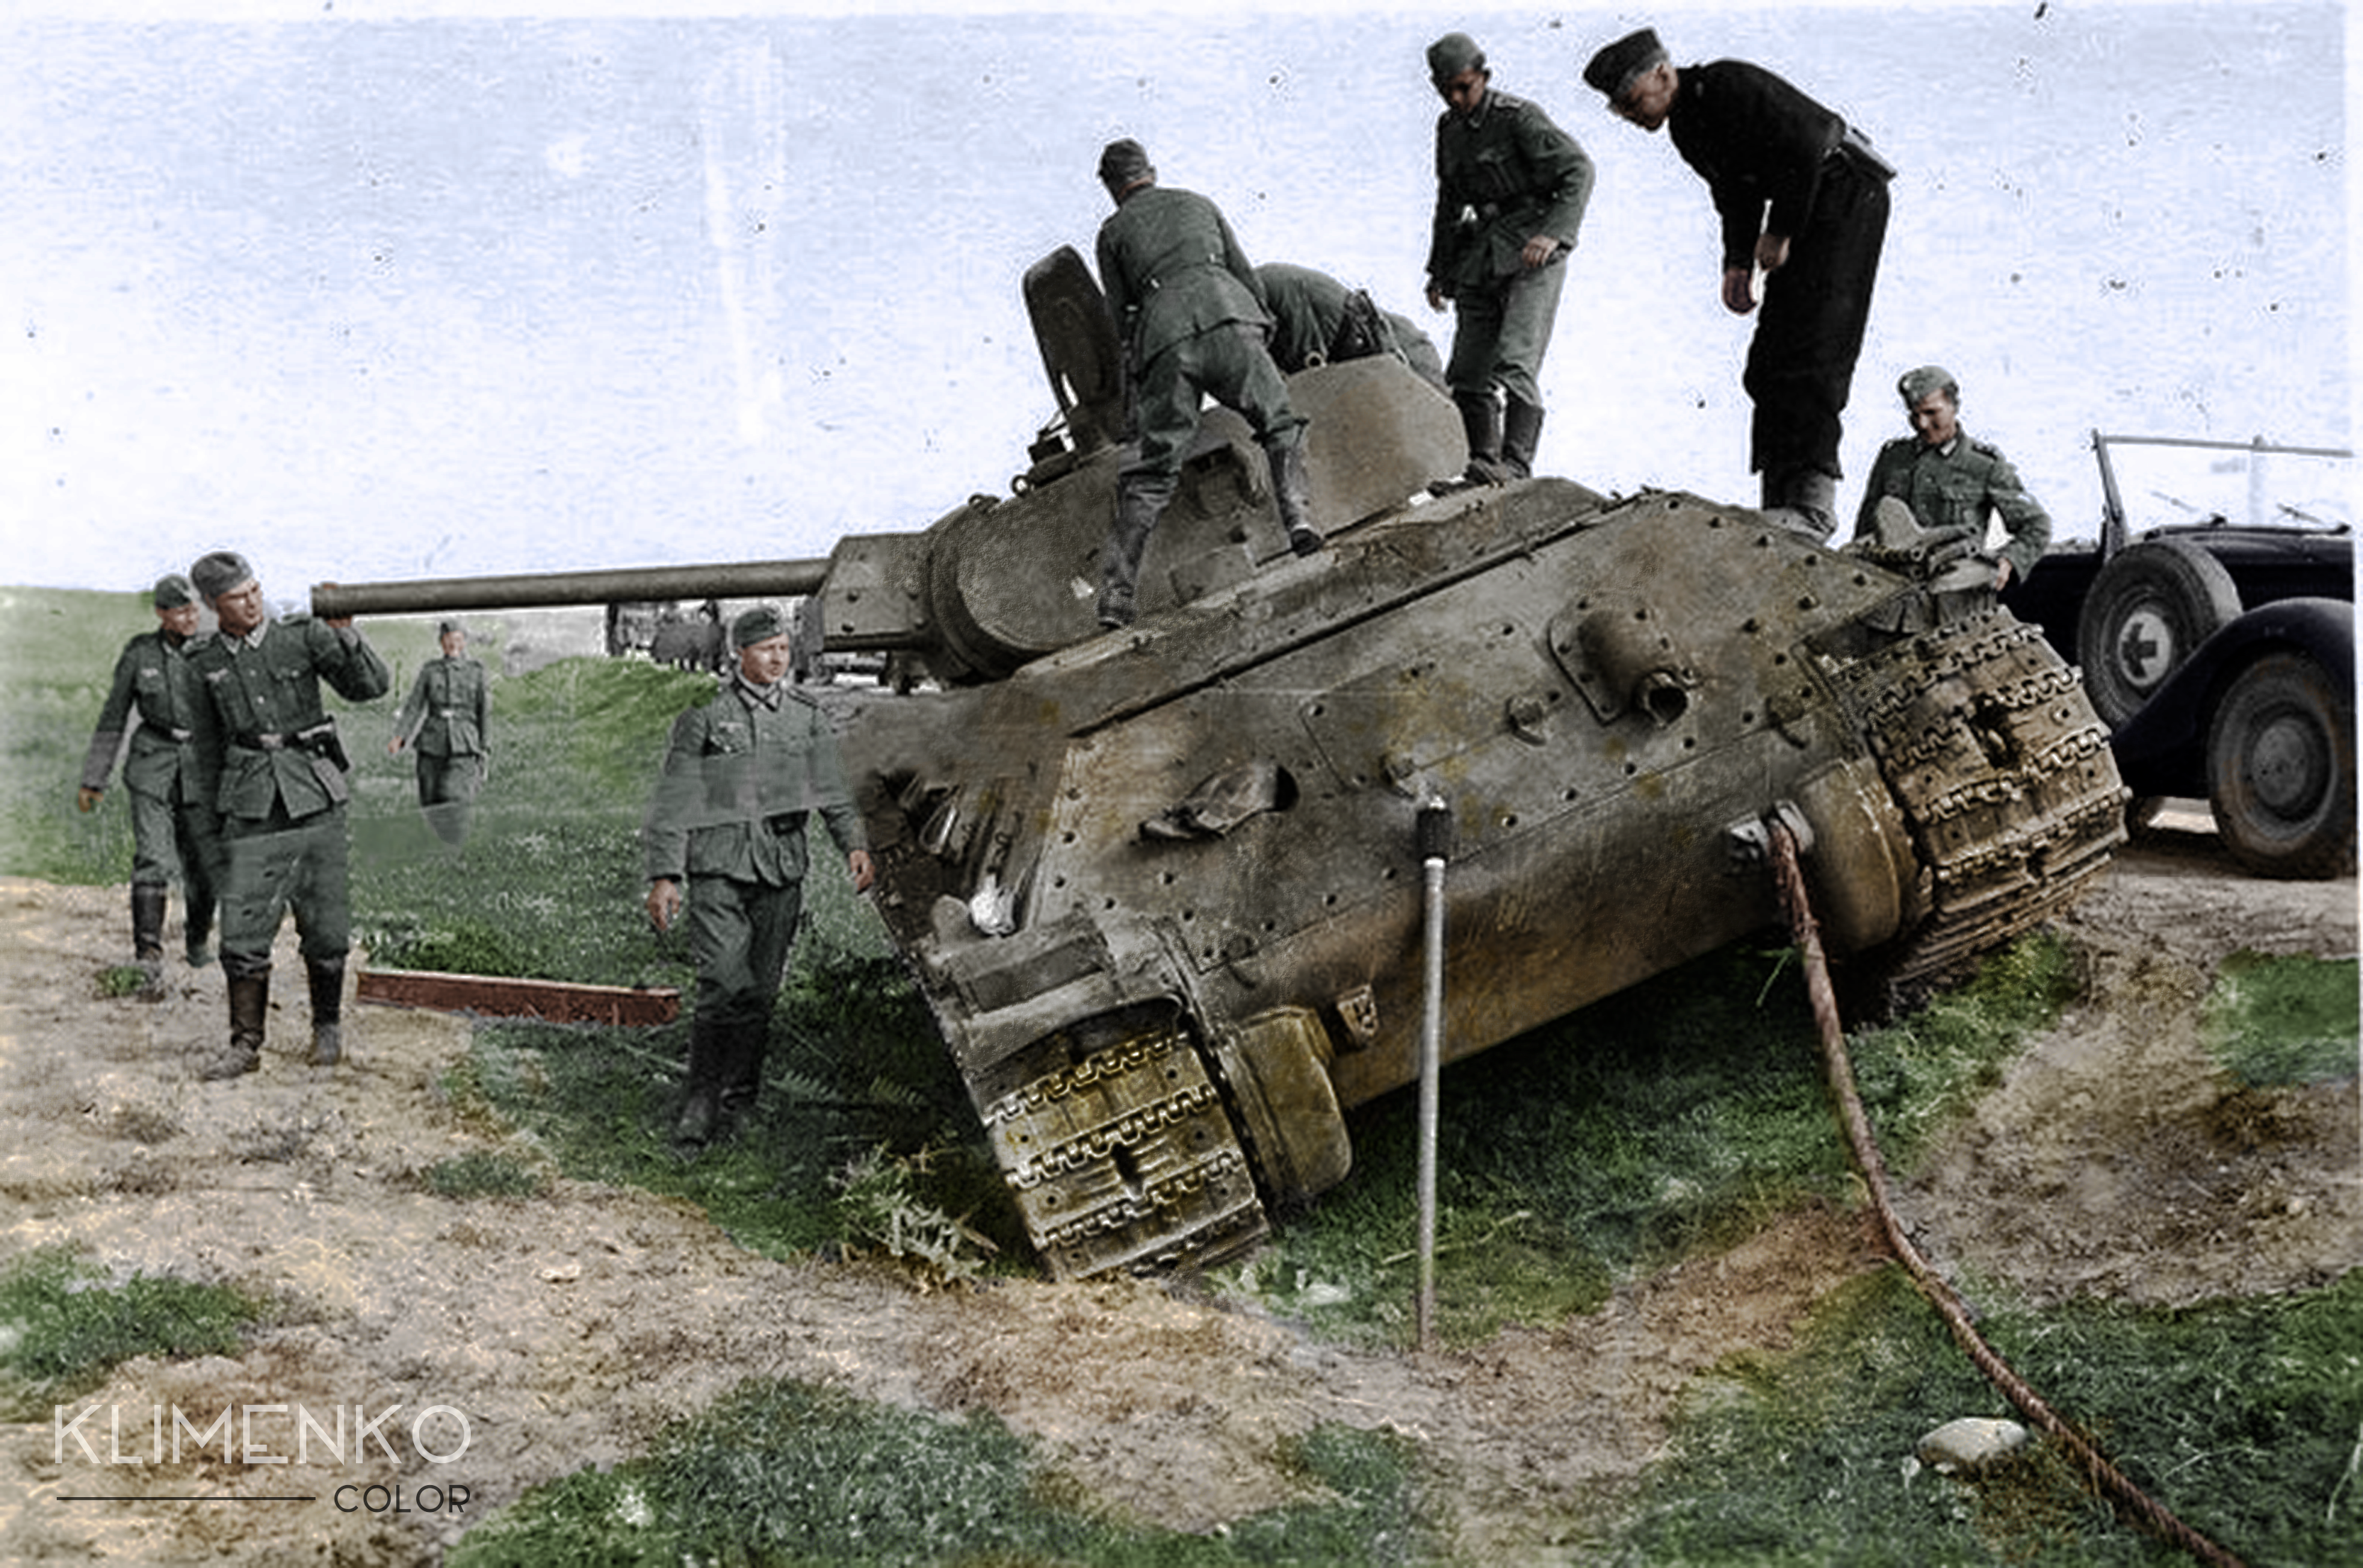 Germans soldiers inspecting a T-34 wreck    #Colorization   Military